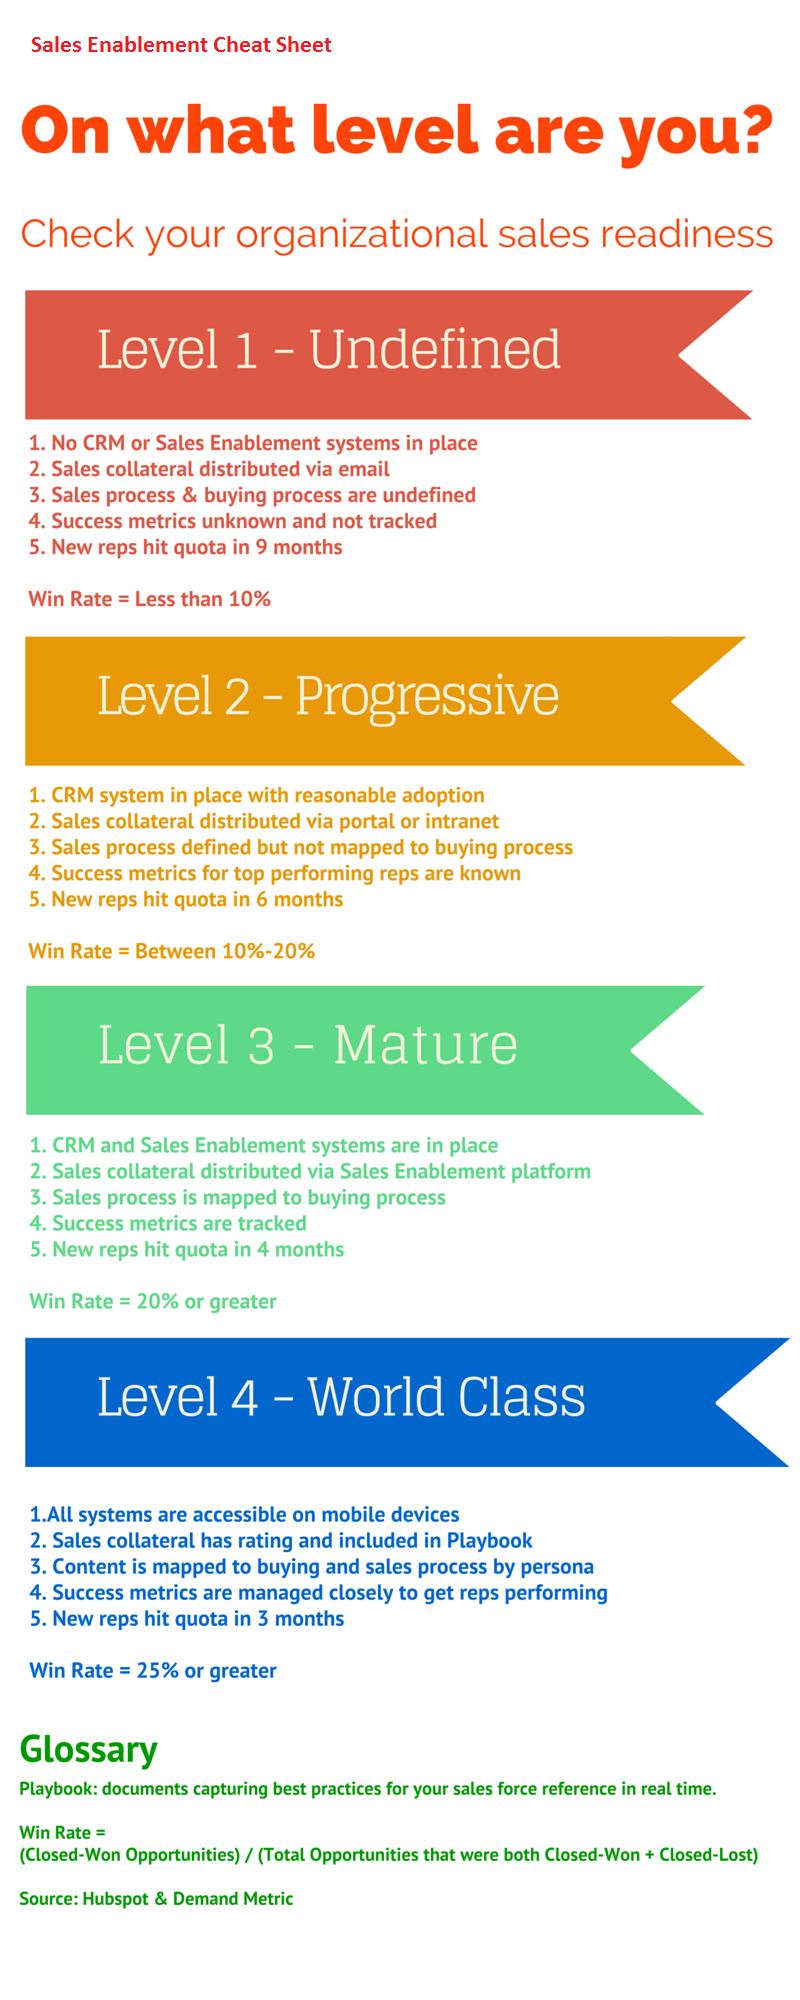 Sales Enablement, Sales Performance, Sales Readiness, CRM, Sales Collateral